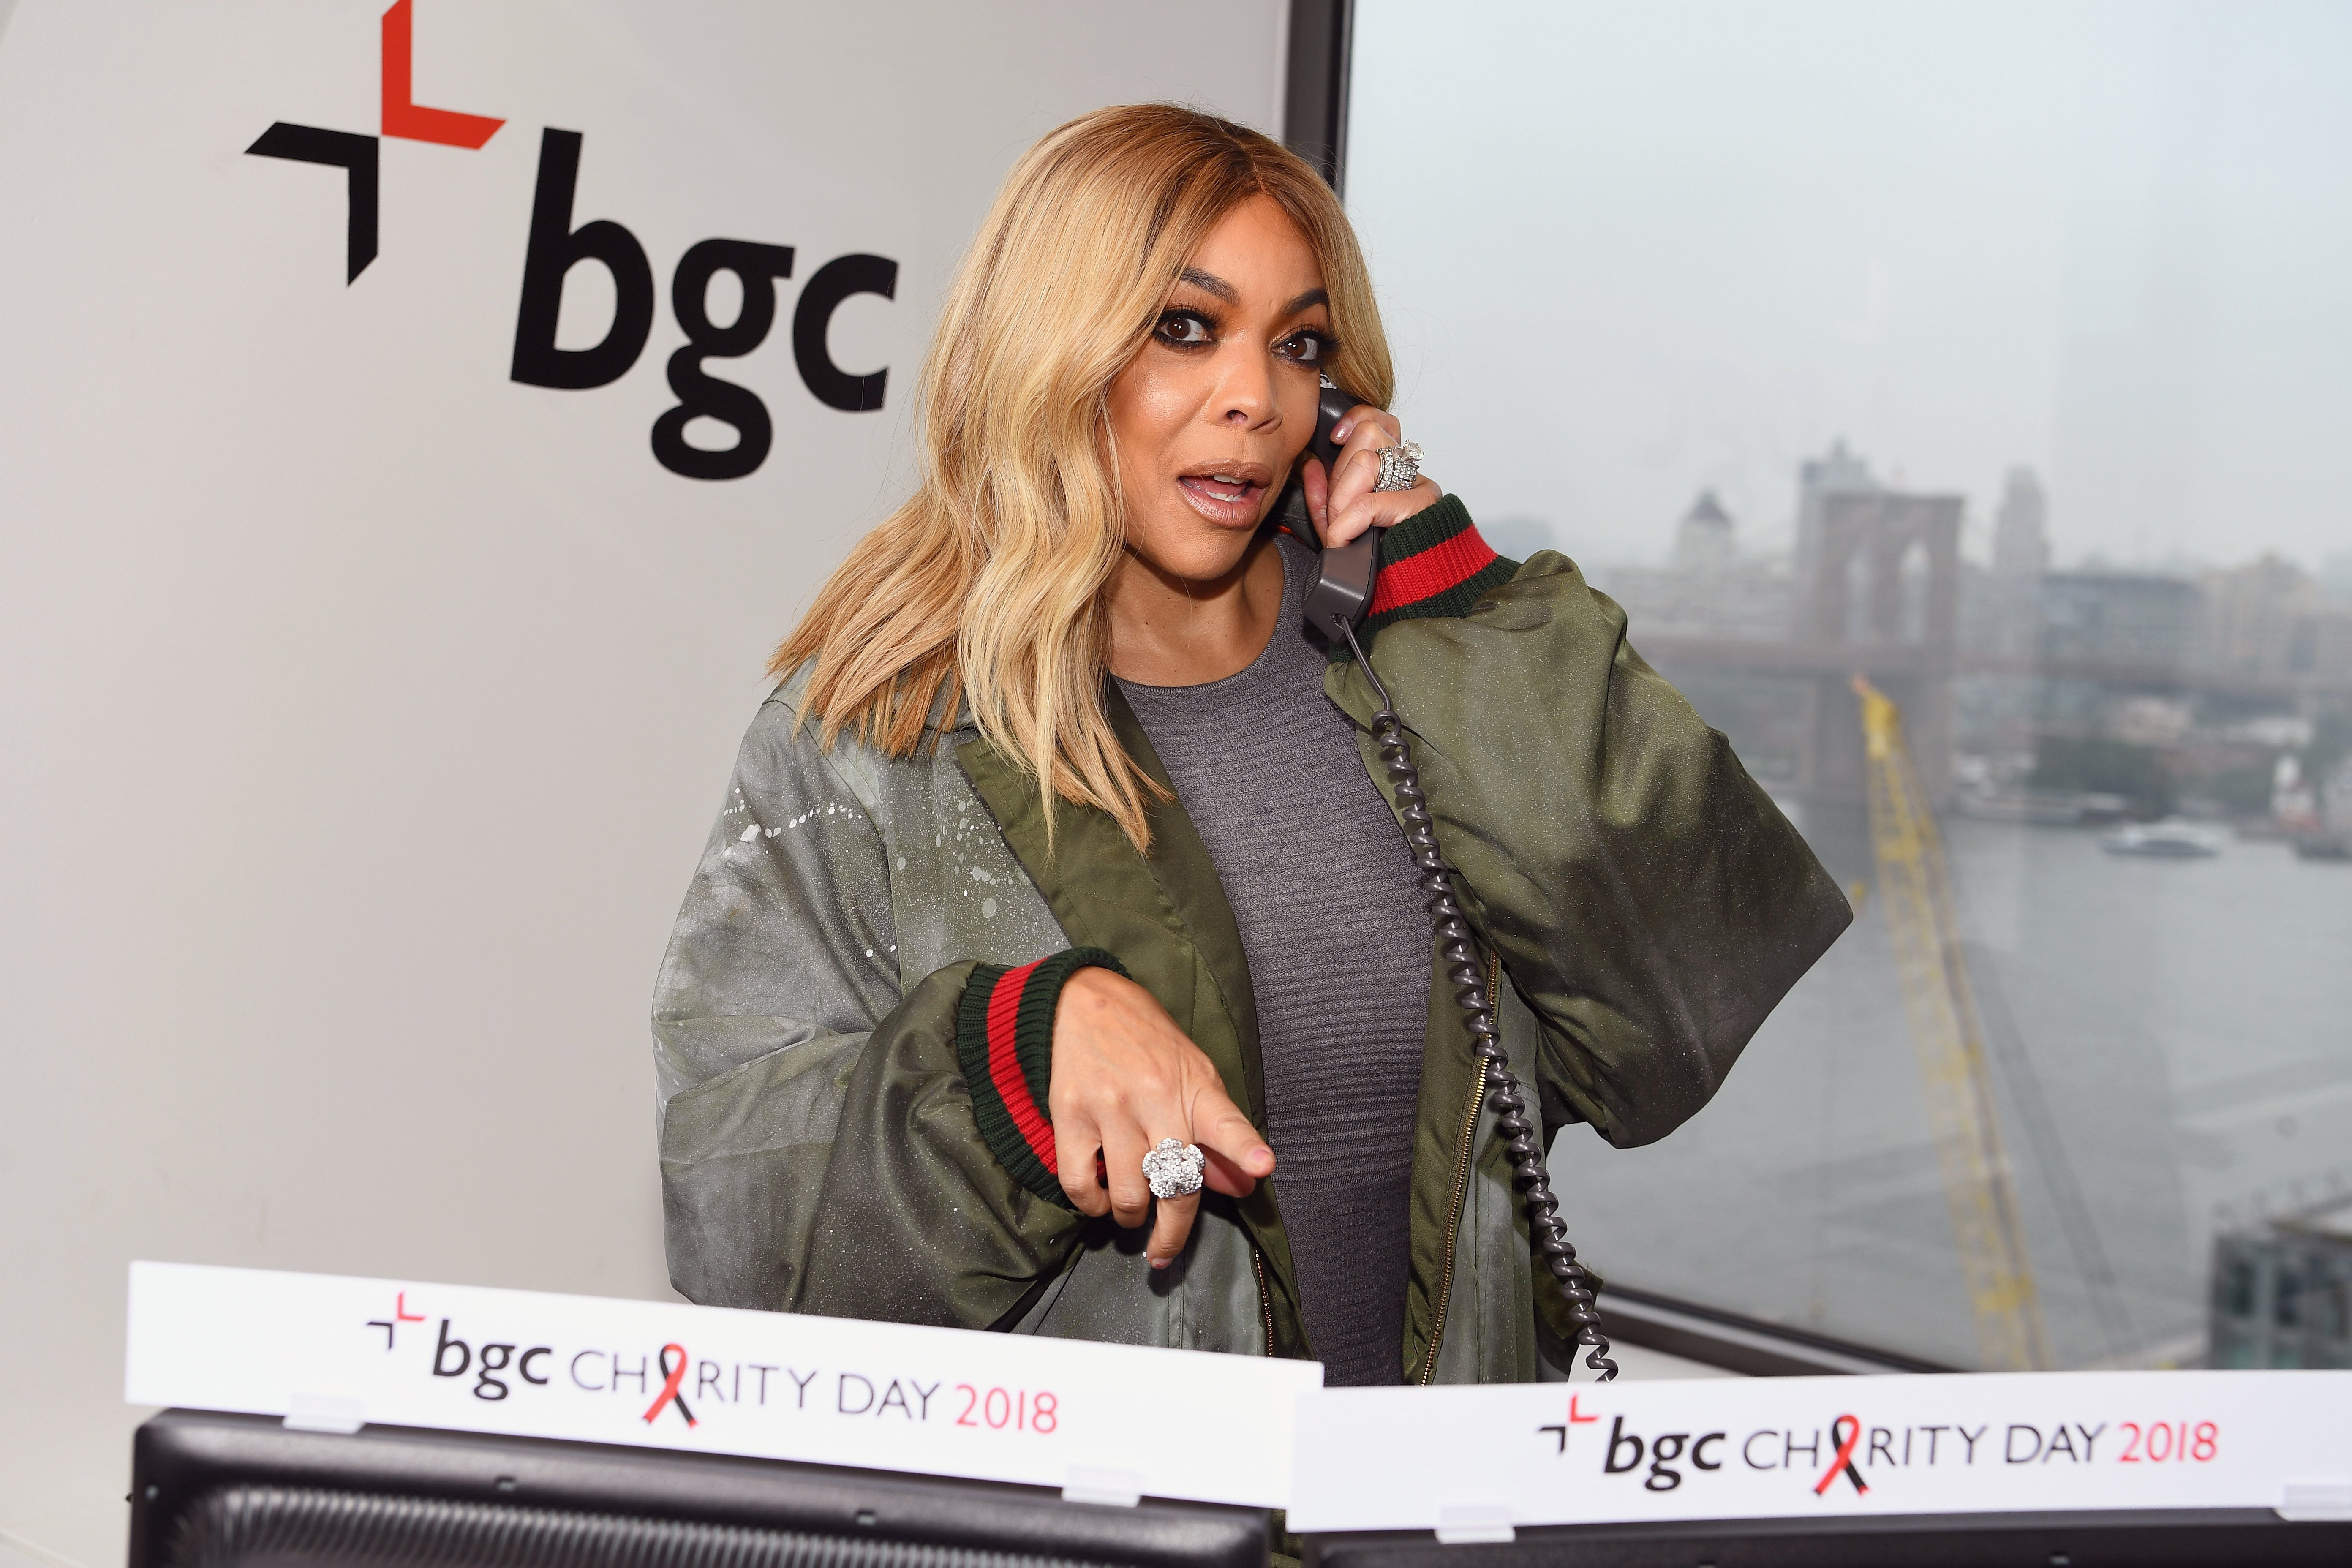 Wendy Williams, Annual Charity Day | Quelle: Getty Images